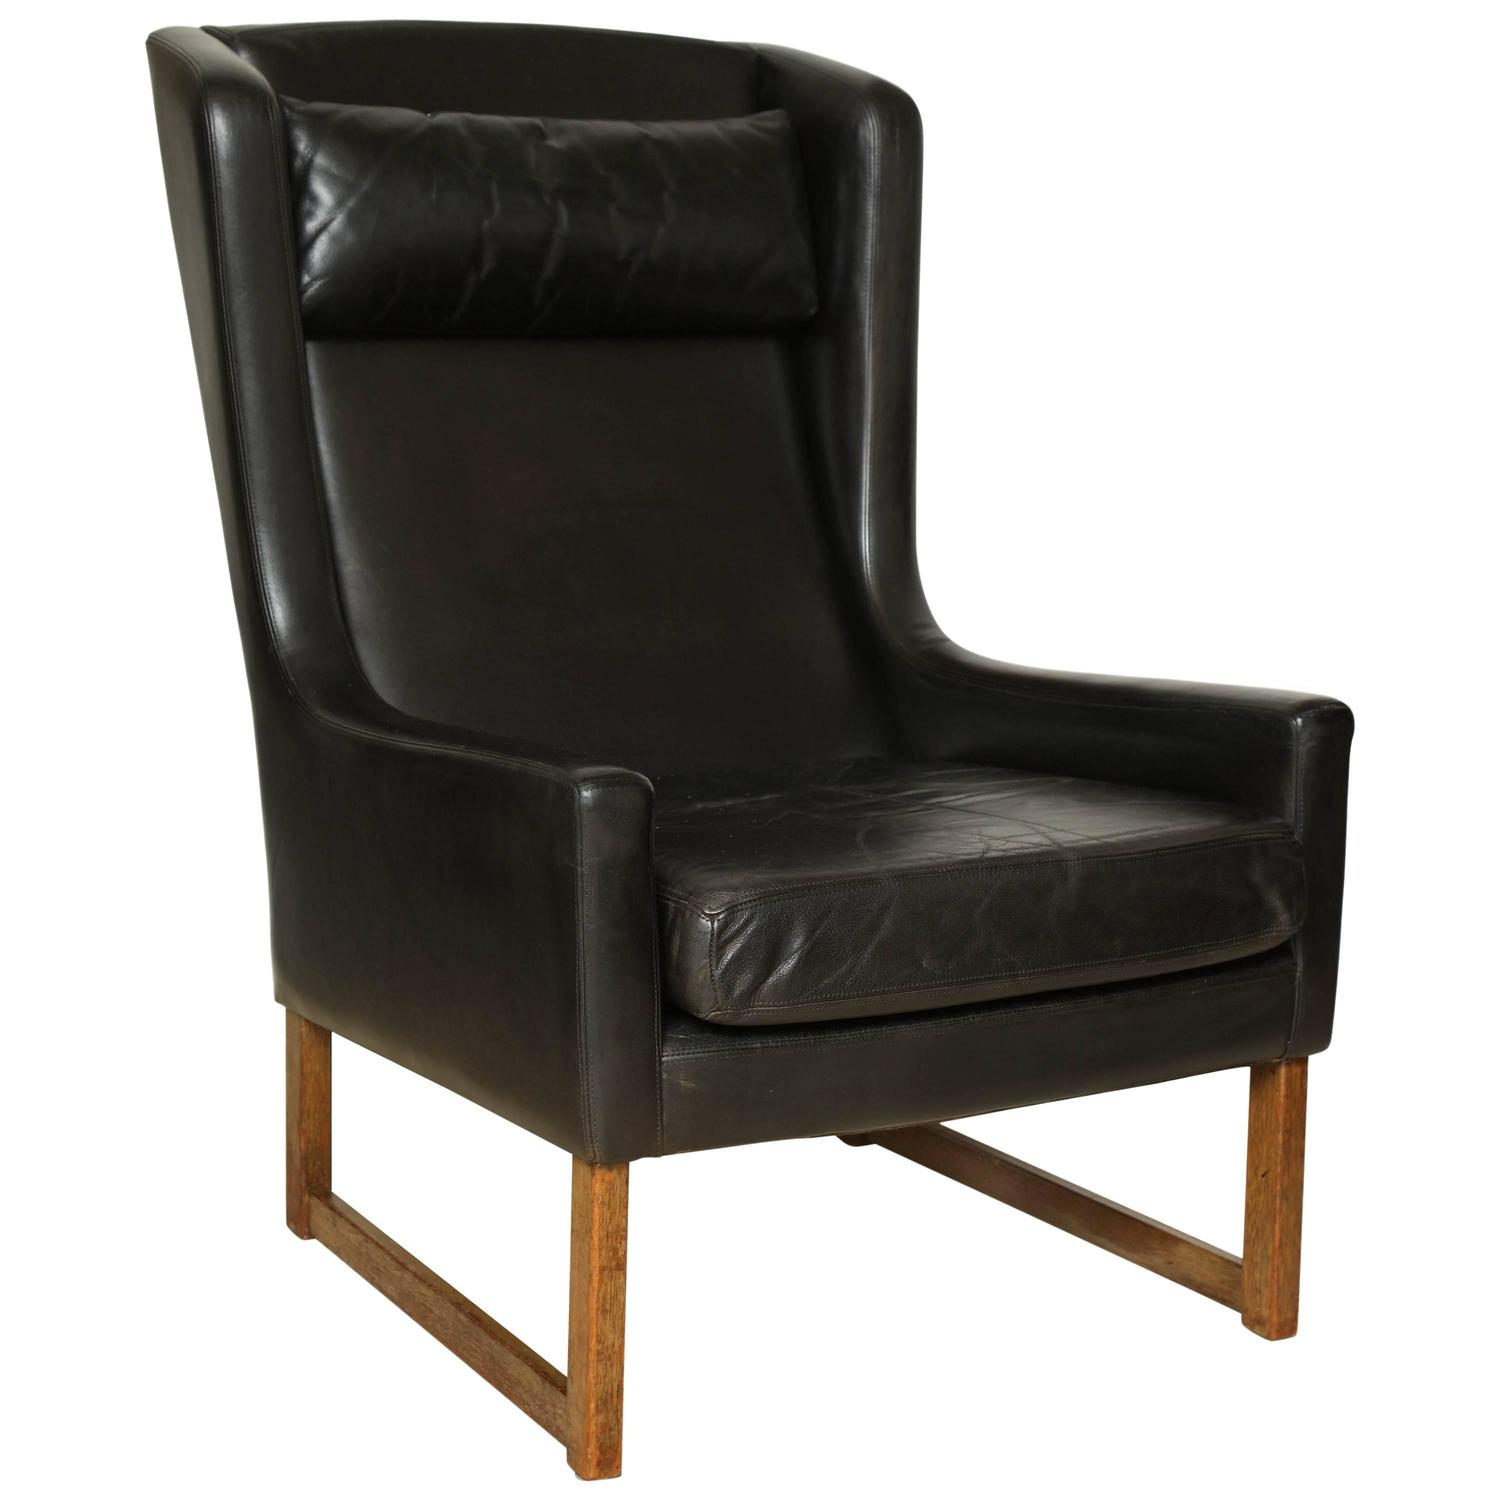 Stretcher Chair Mid 20th Century Black Leather Wing Chair Cross Stretcher